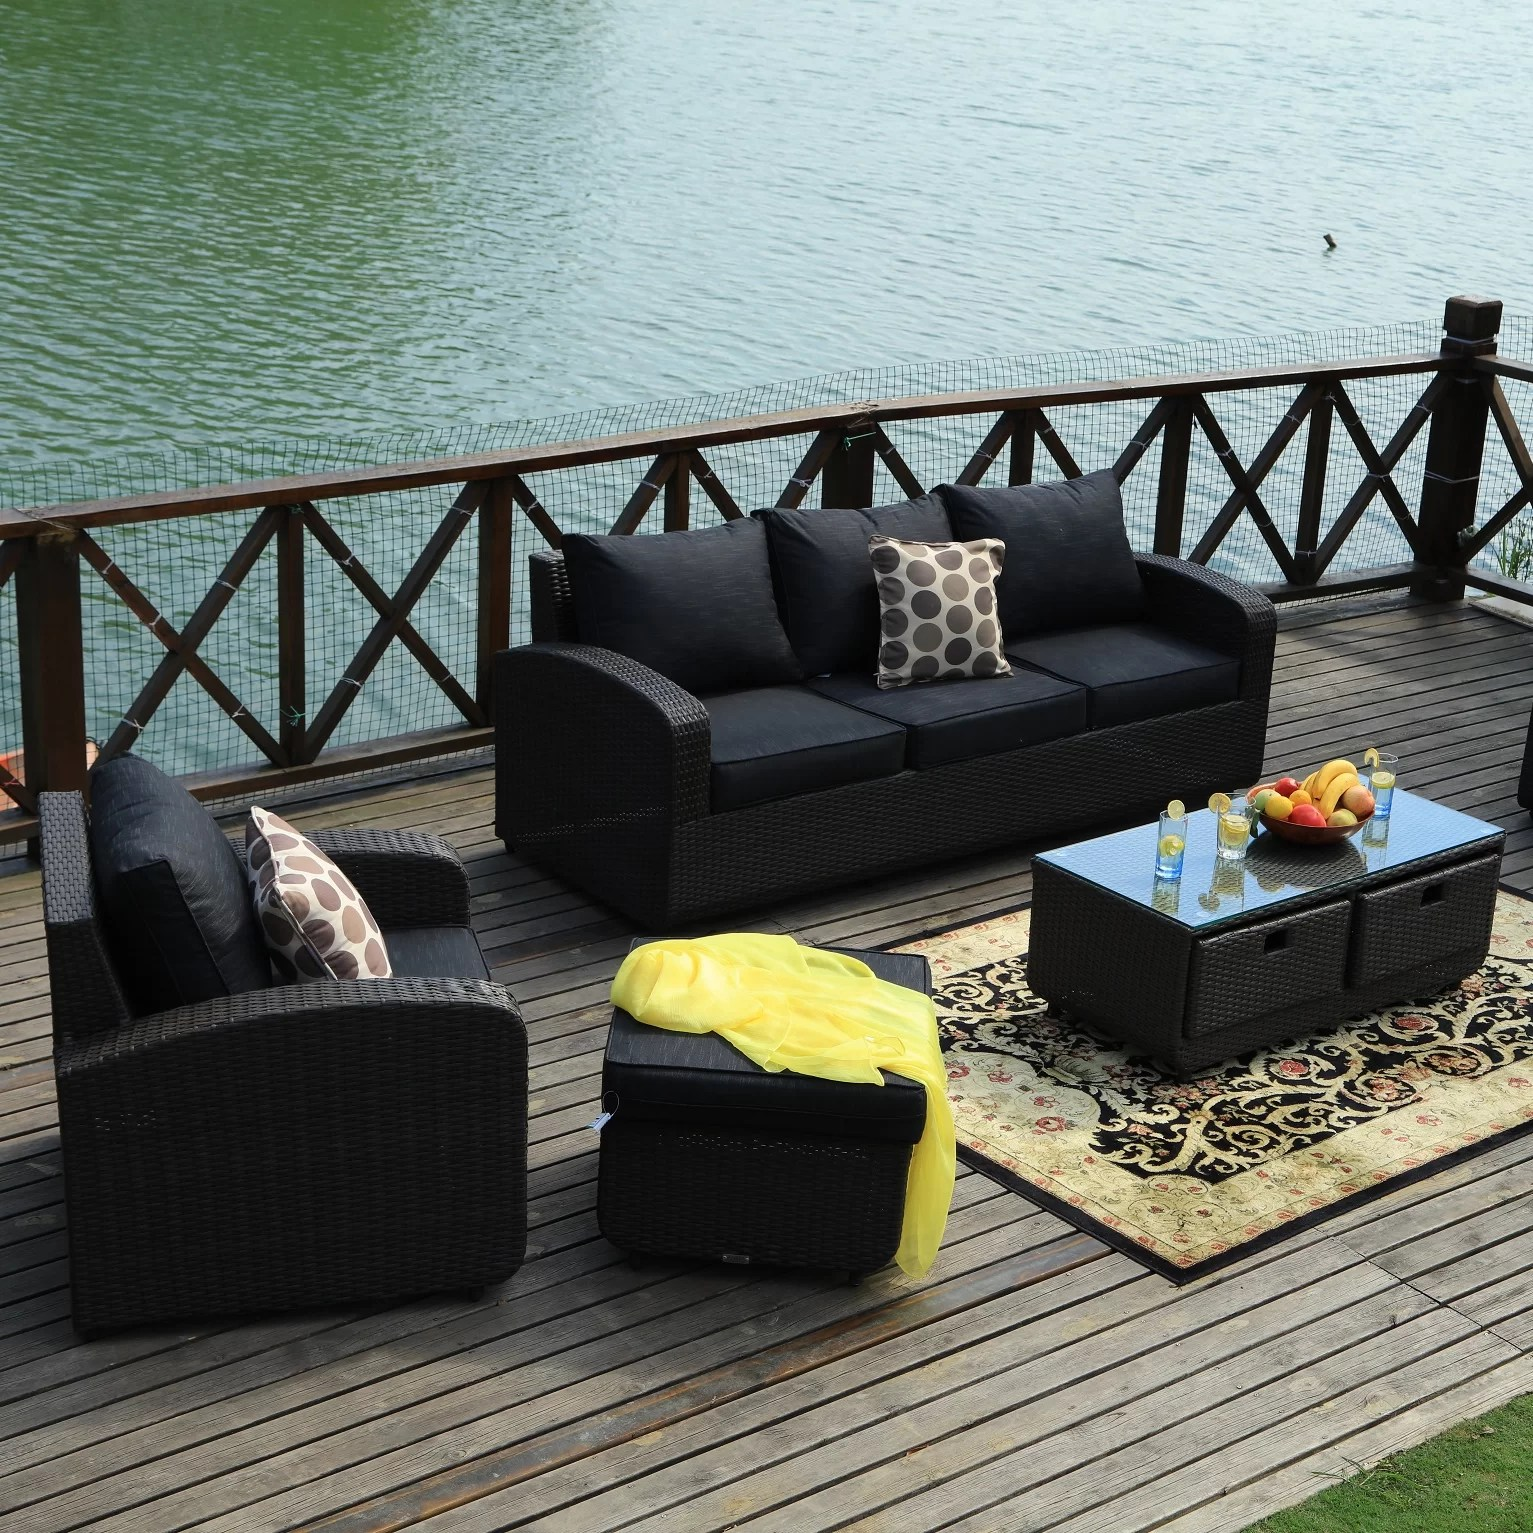 Baptist 6 Piece Rattan Sofa Set With Cushions Latitude Run Belmonte 5 Piece Rattan Sofa Seating Group With Cushions